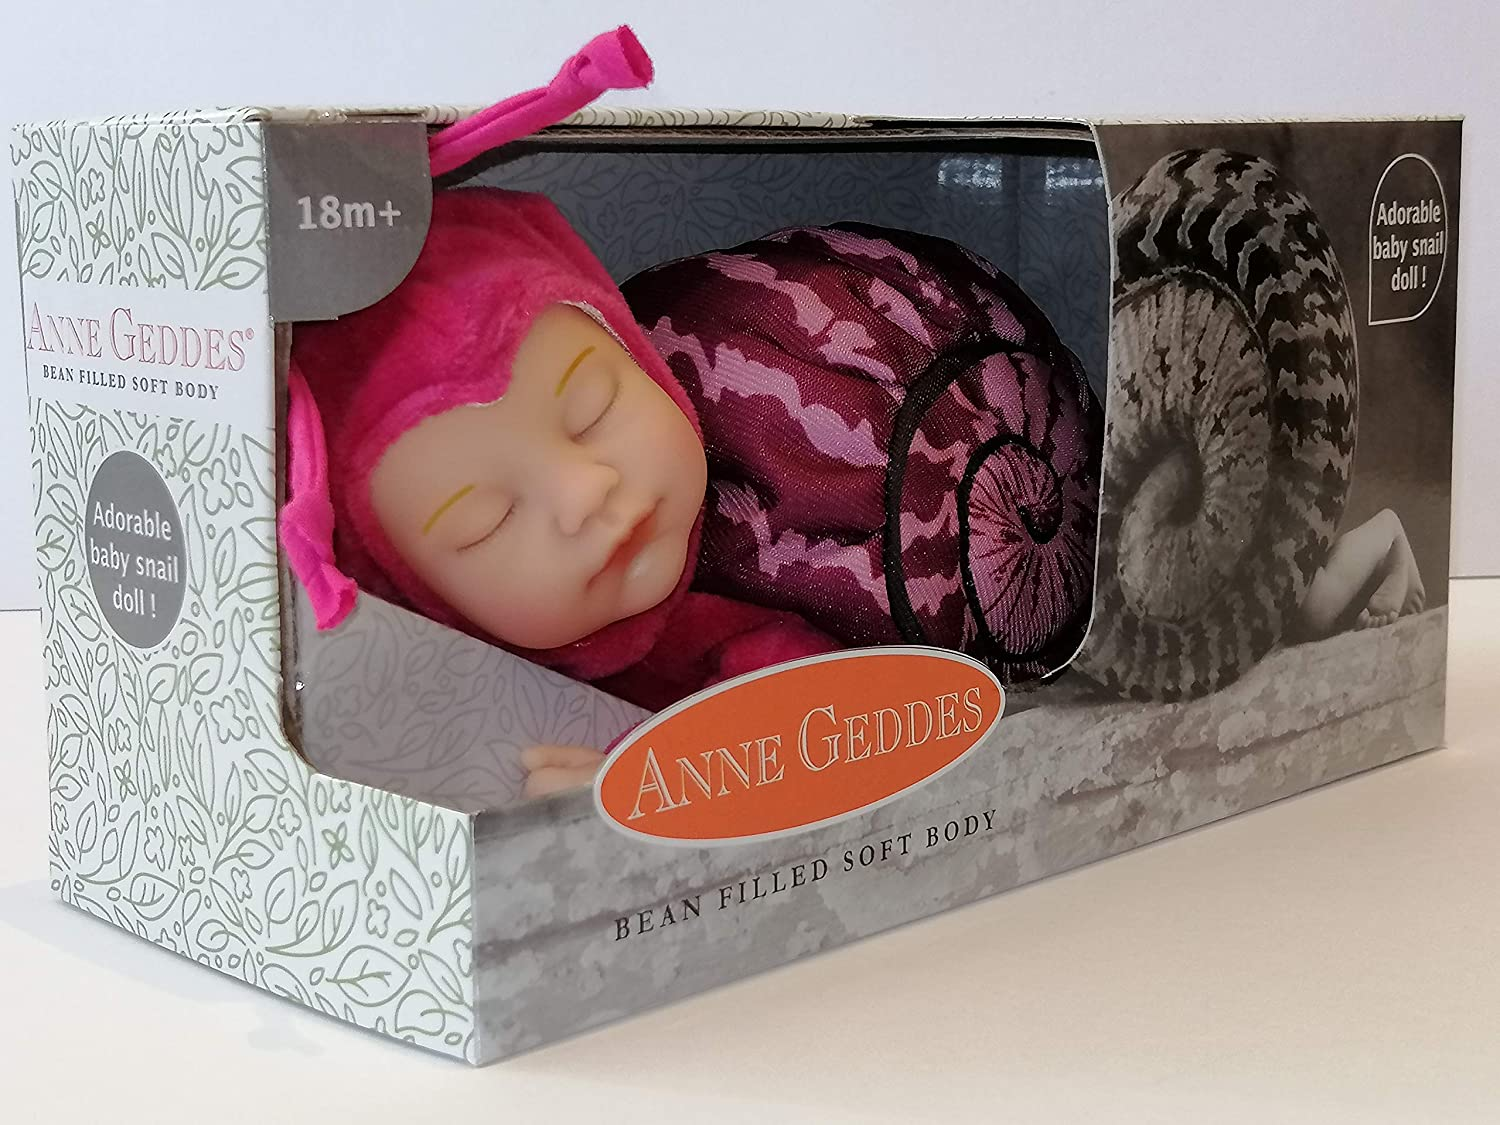 Bean Filled Soft Body Pink Snail 9 inch Baby Doll Anne Geddes 579169 Bambolina Bambola Rosa Baby Lumaca